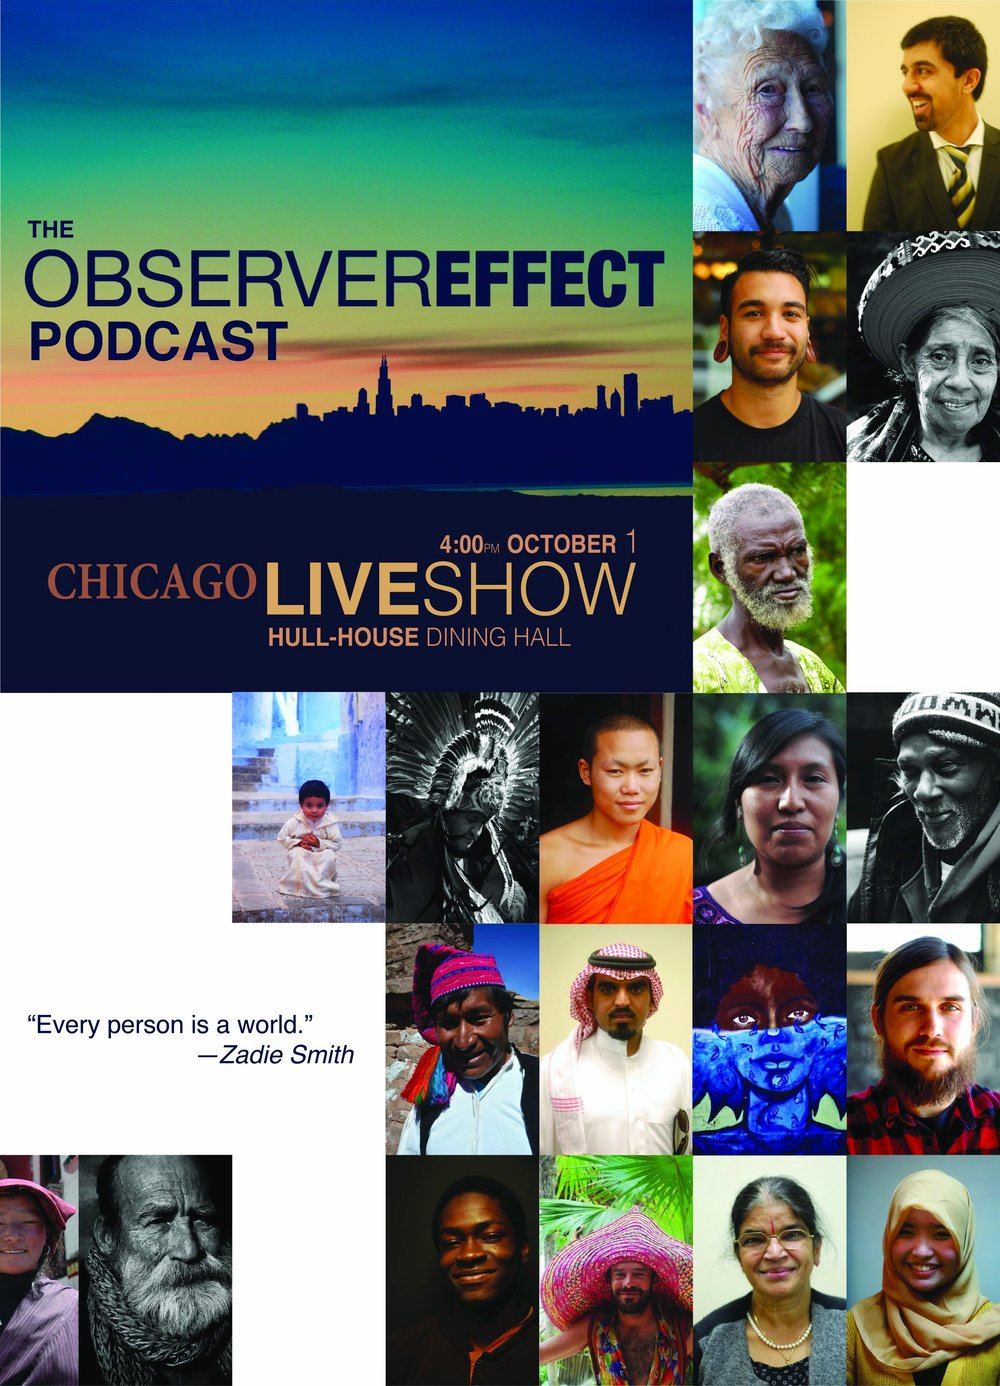 The Observer Effect Live Show (with skyline).jpg